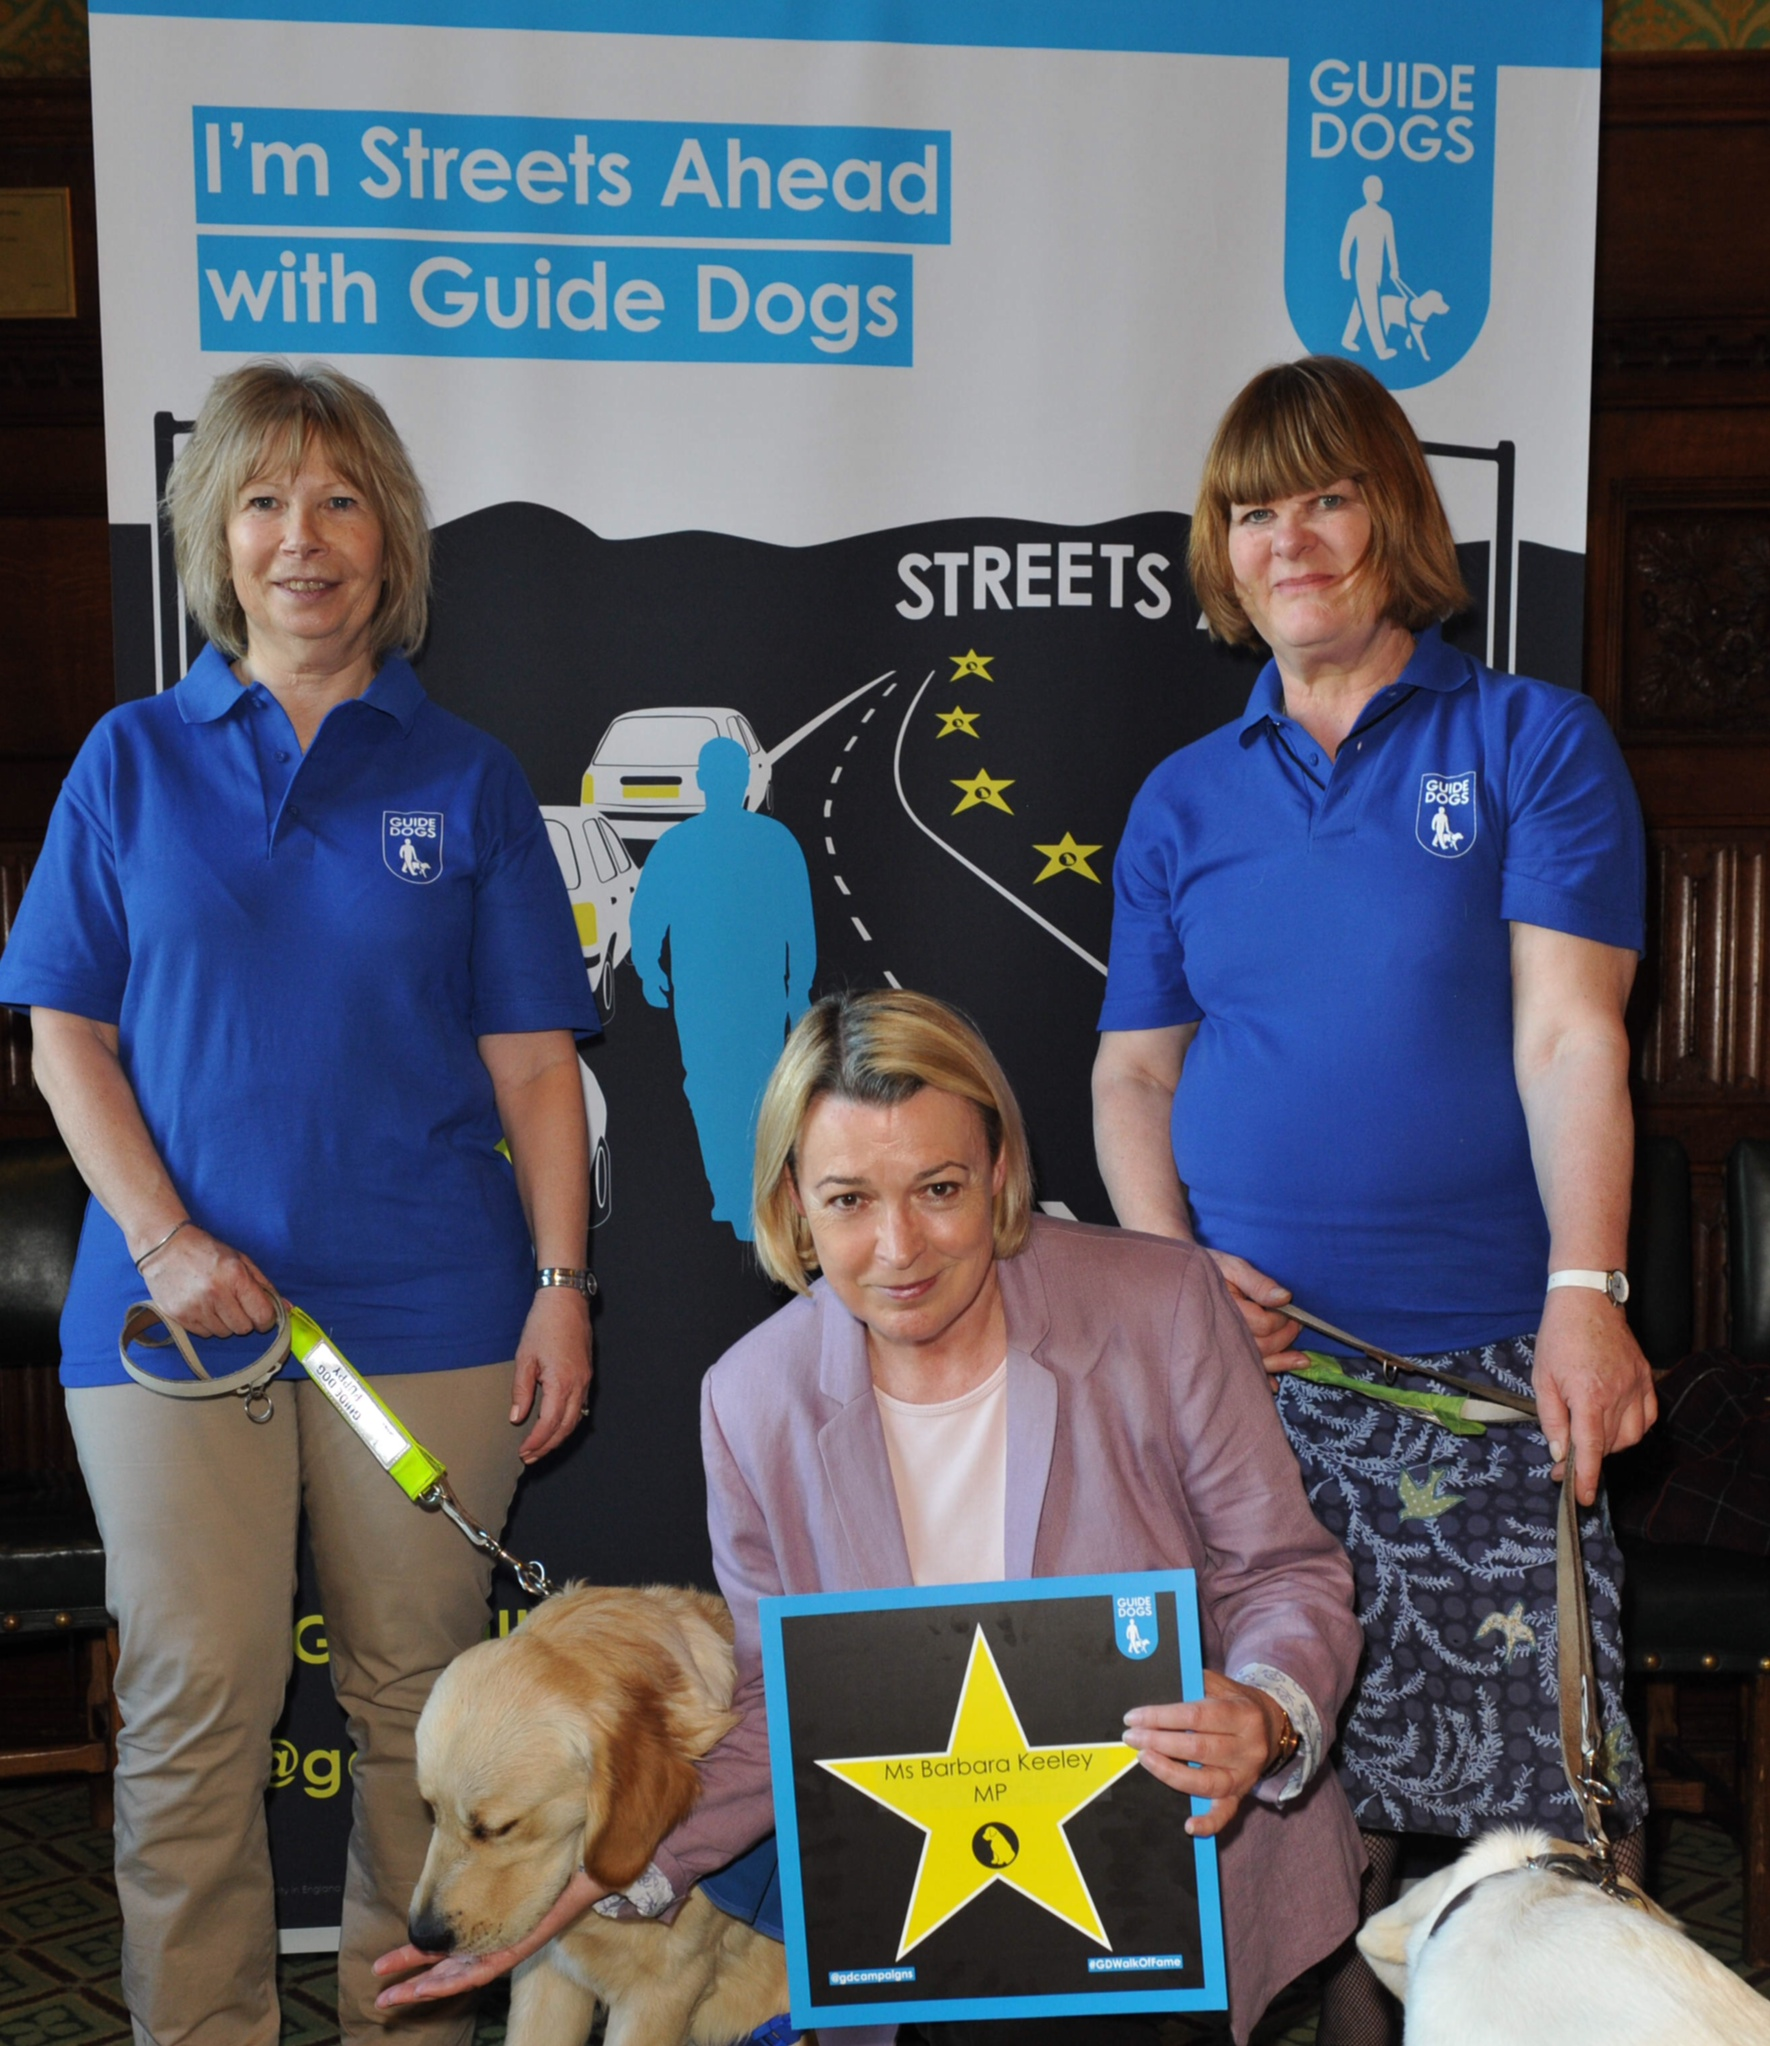 150616_BK_at_guide_dogs_reception_cropped.JPG